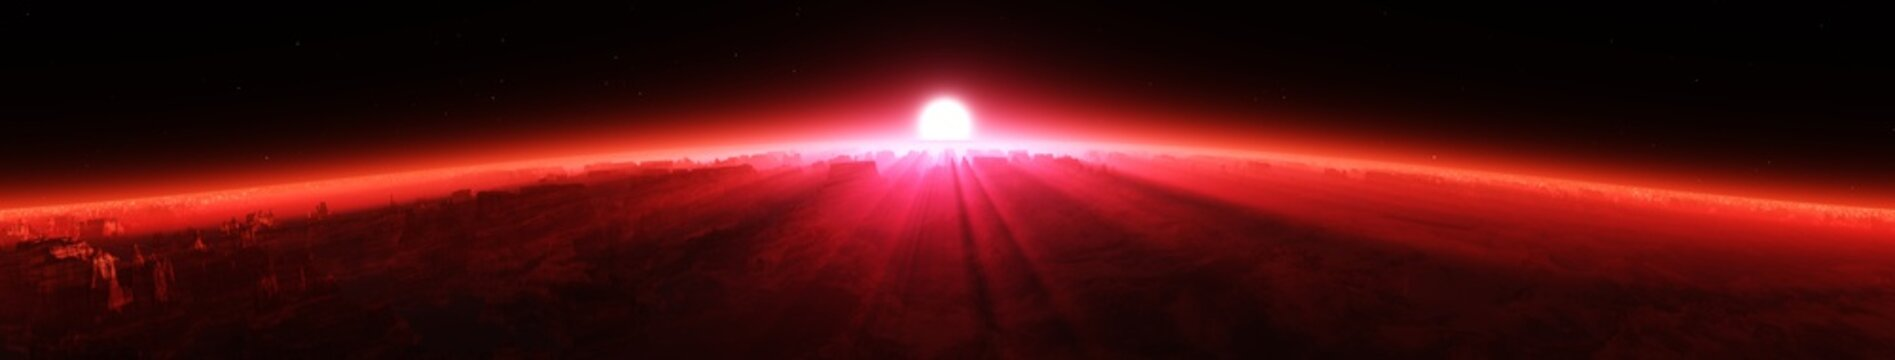 The red planet, the sunrise of the star,